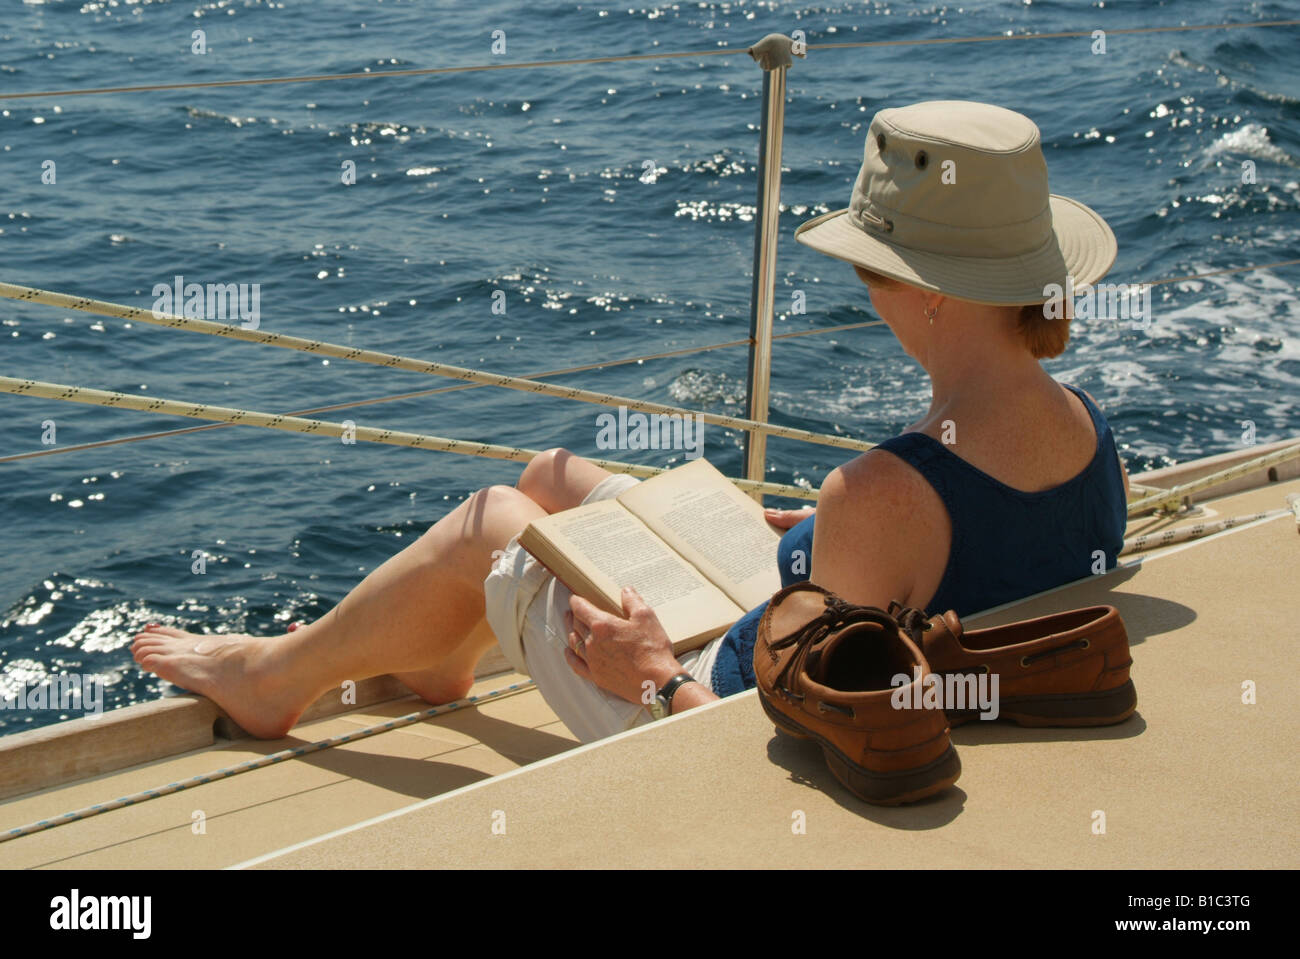 Worksheet Reading Boat woman reading book on boat stock photo royalty free image boat